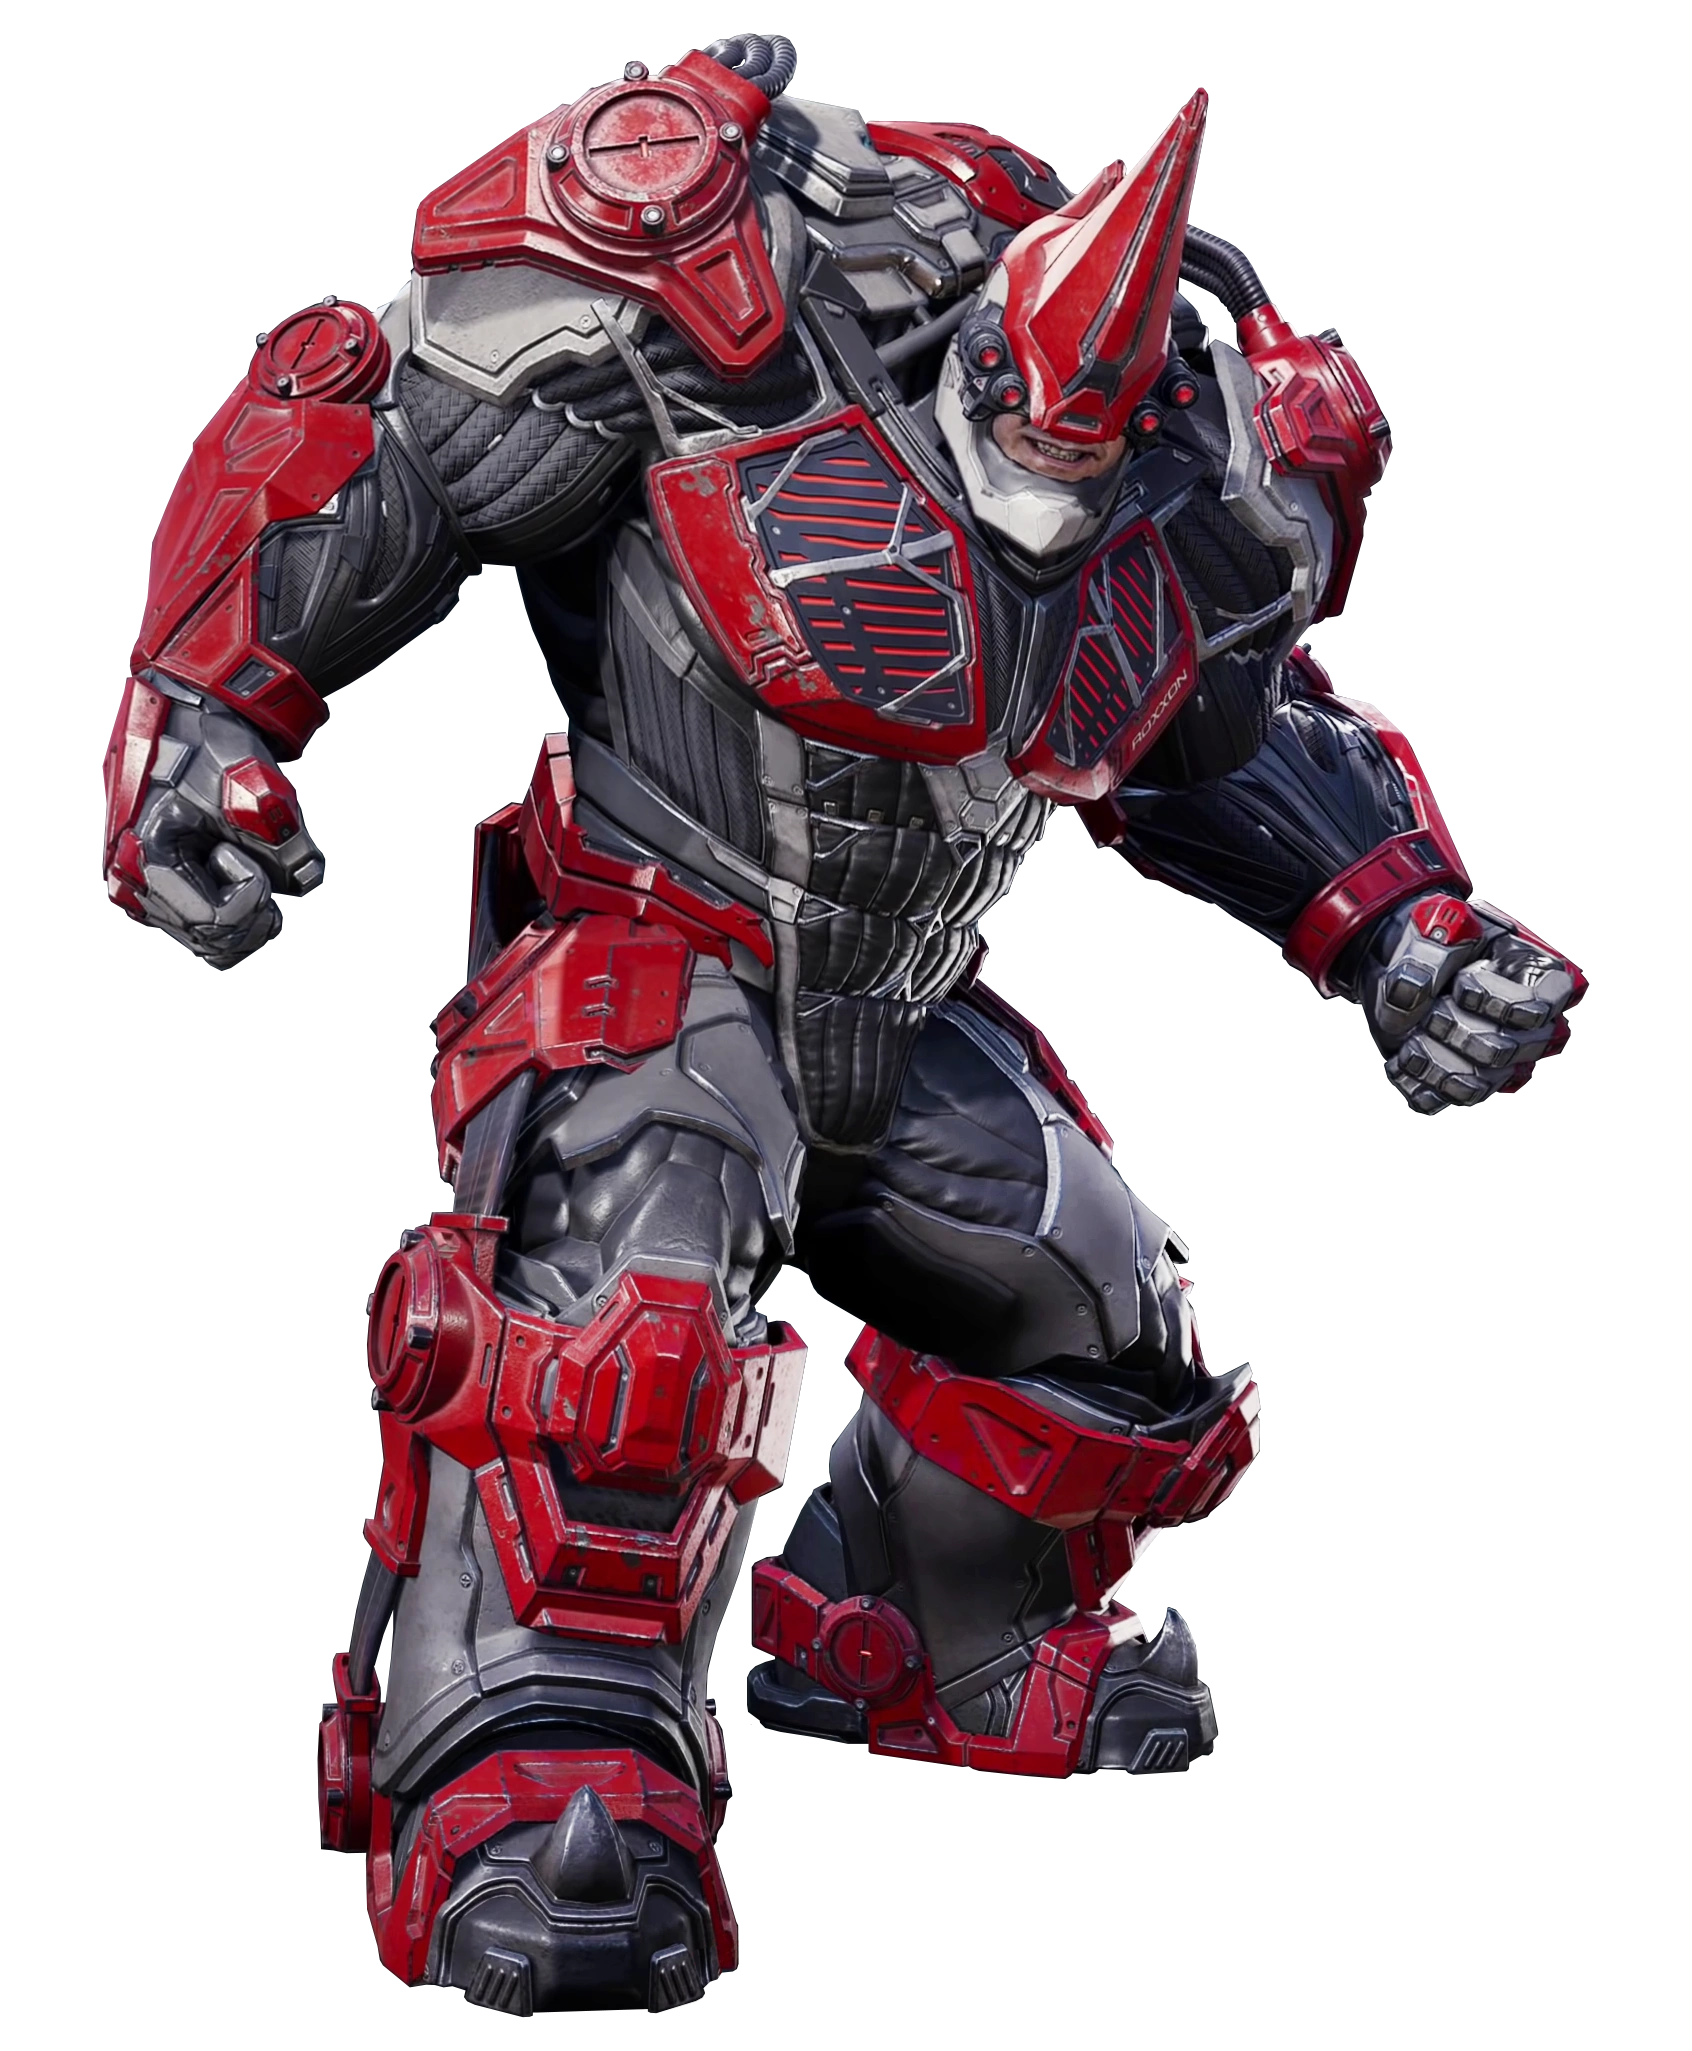 Aleksei Sytsevich (Earth-1048) from Marvel's Spider-Man Miles Morales promo 001.png